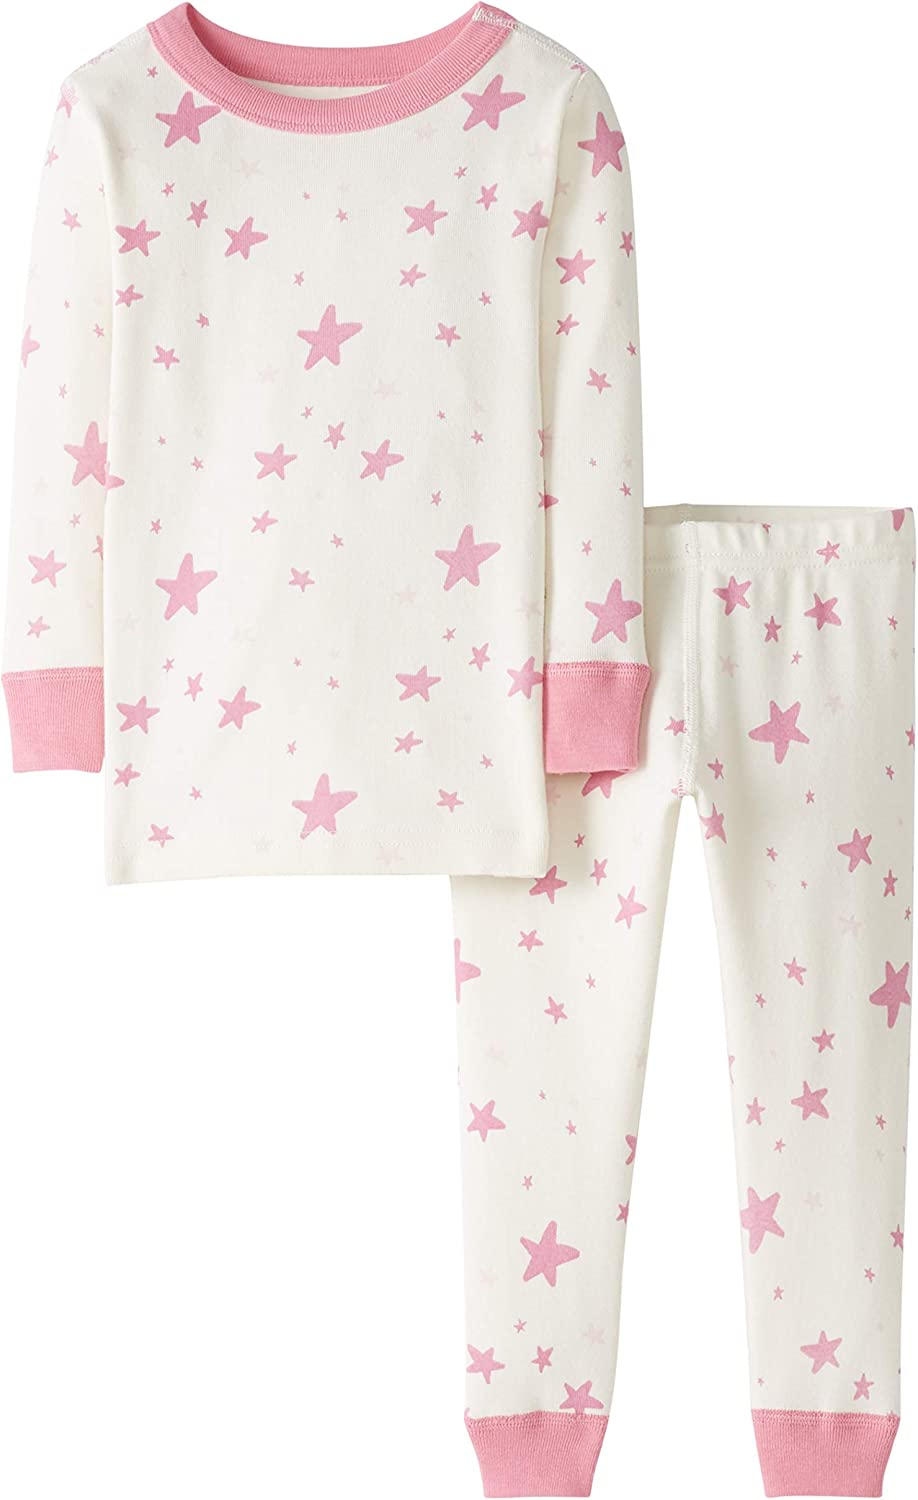 Moon and Back Baby 2 Piece Long Sleeve Pajama Set 18-24 months Penguin Print